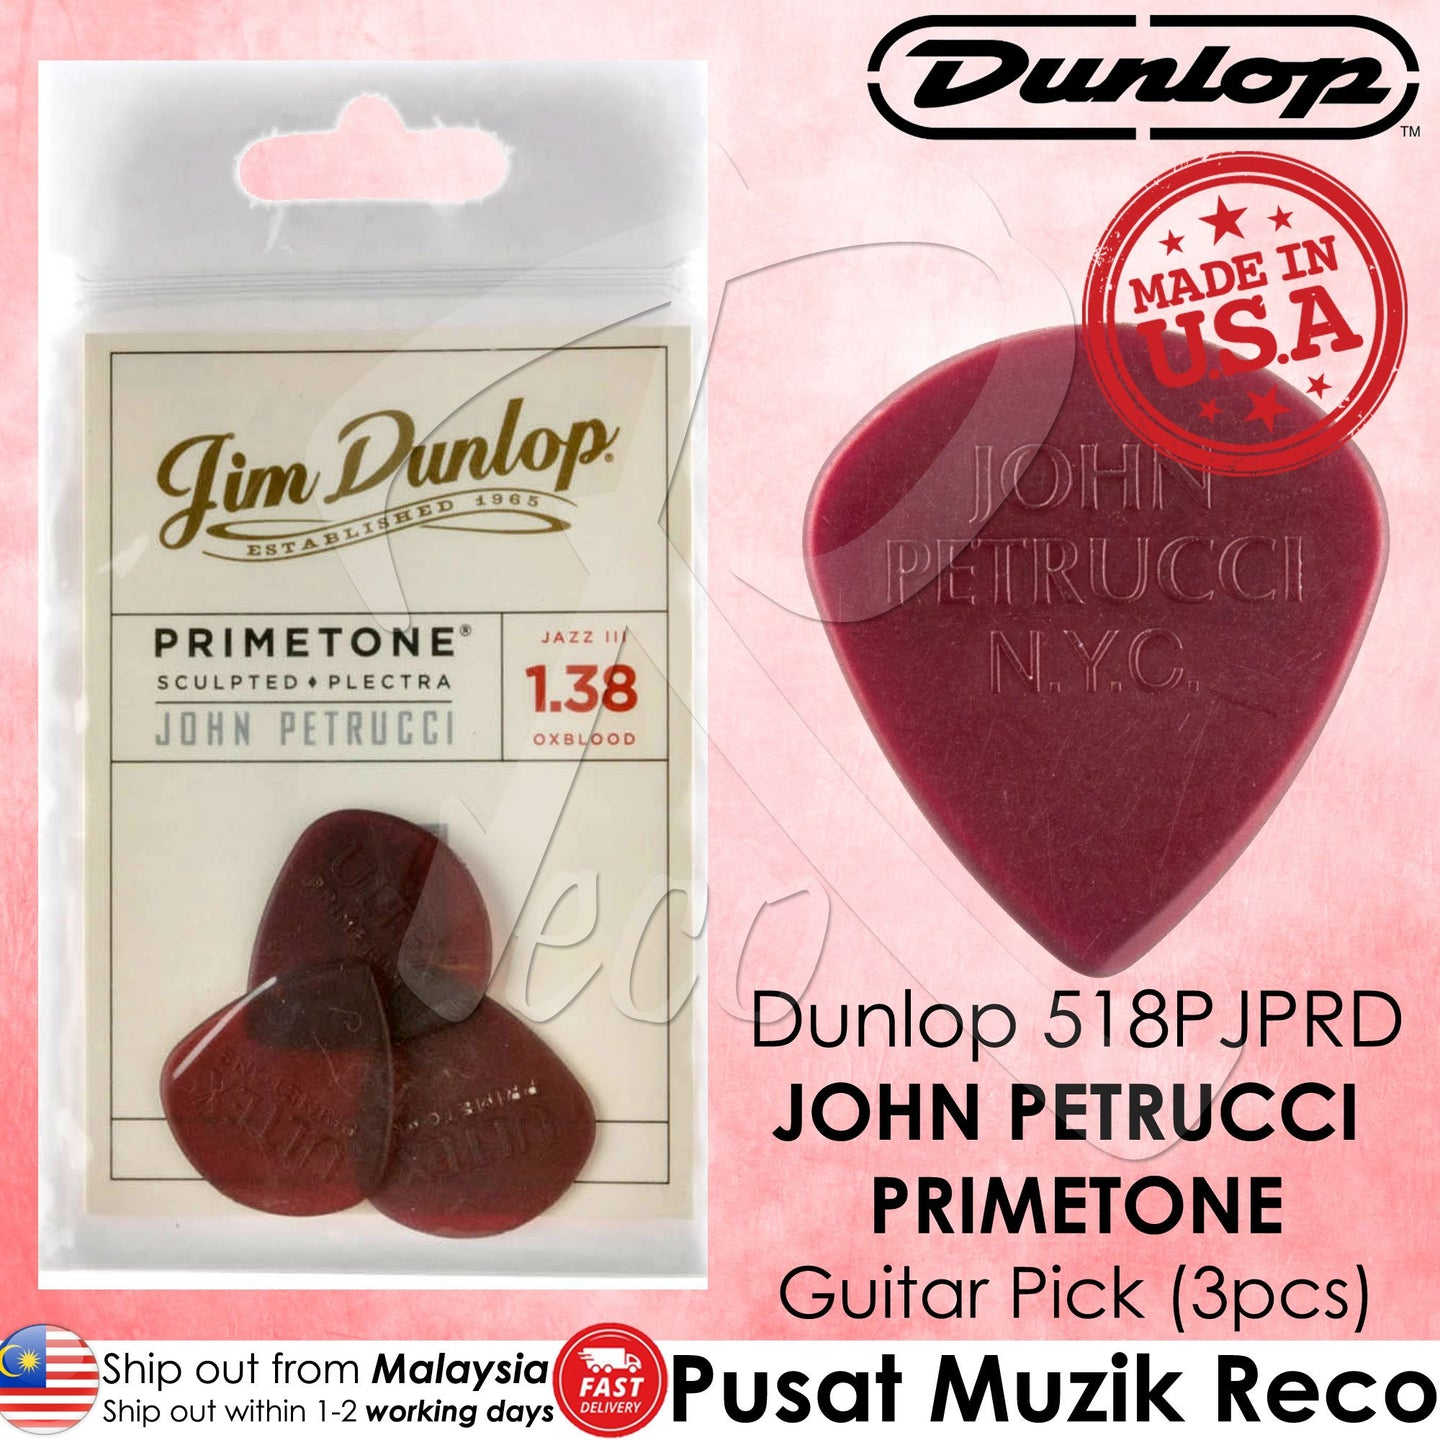 Jim Dunlop 518PJPRD John Petrucci Primetone Jazz III 1.38mm Guitar Picks Red(3pcs) | Reco Music Malaysia